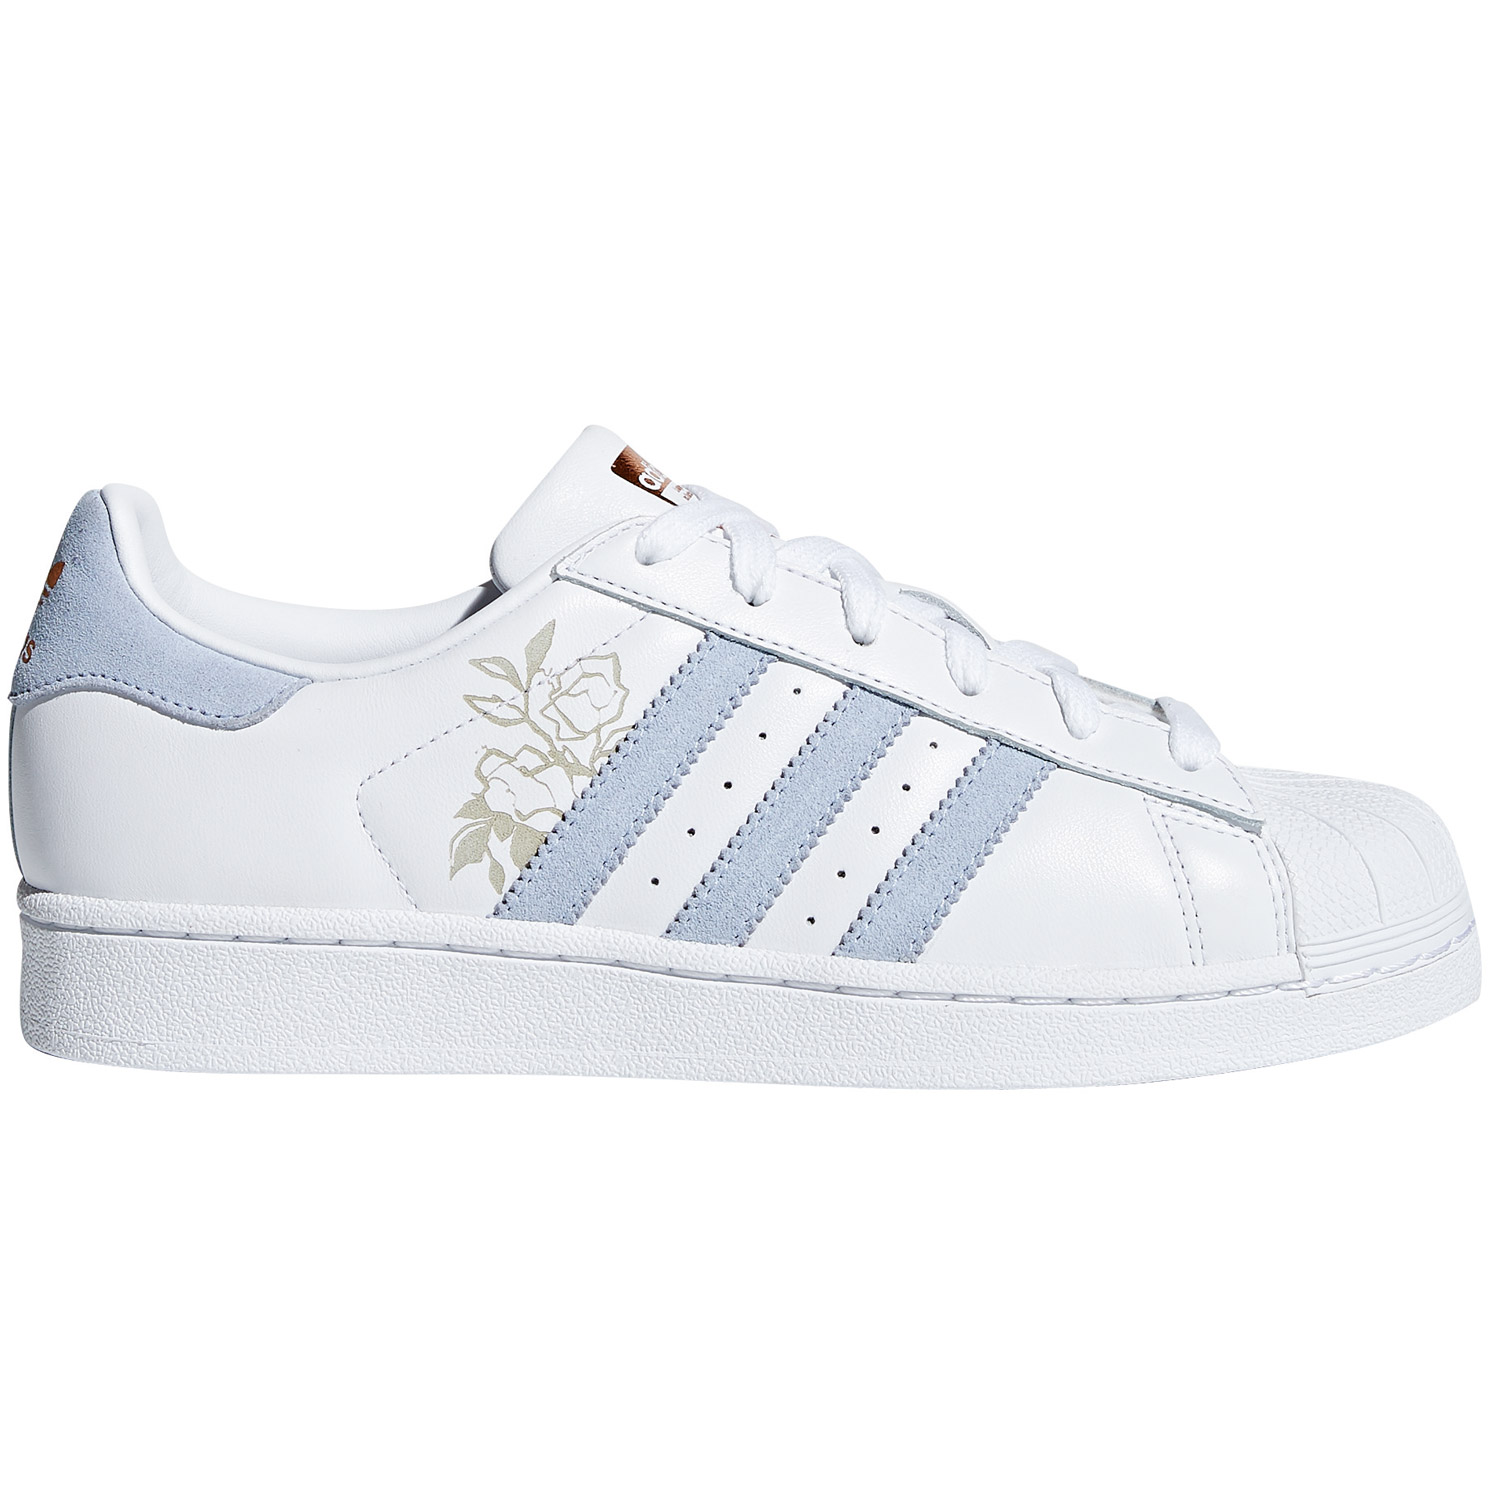 629c5cbc9cd74e adidas Originals Superstar W Damen Sneaker weiß grau CG5939